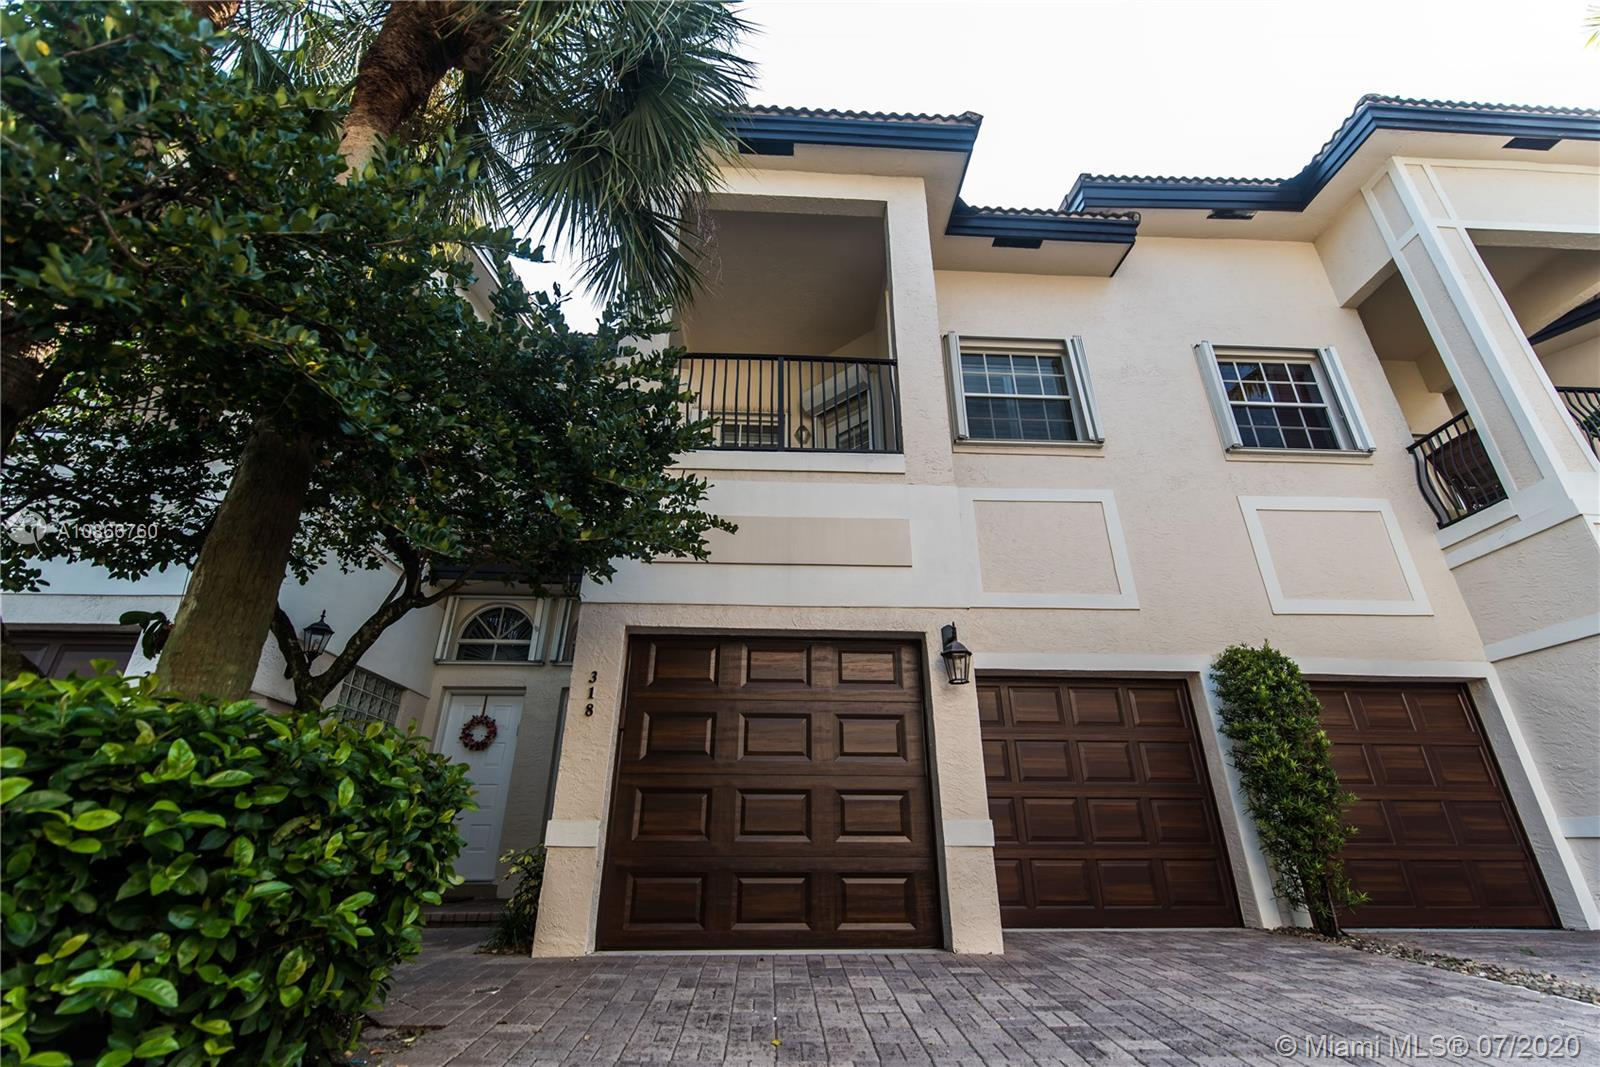 Designer 3/2.5 Gated Townhouse with Two Car Garage. Great Location. Walk to Las Olas. The first floo